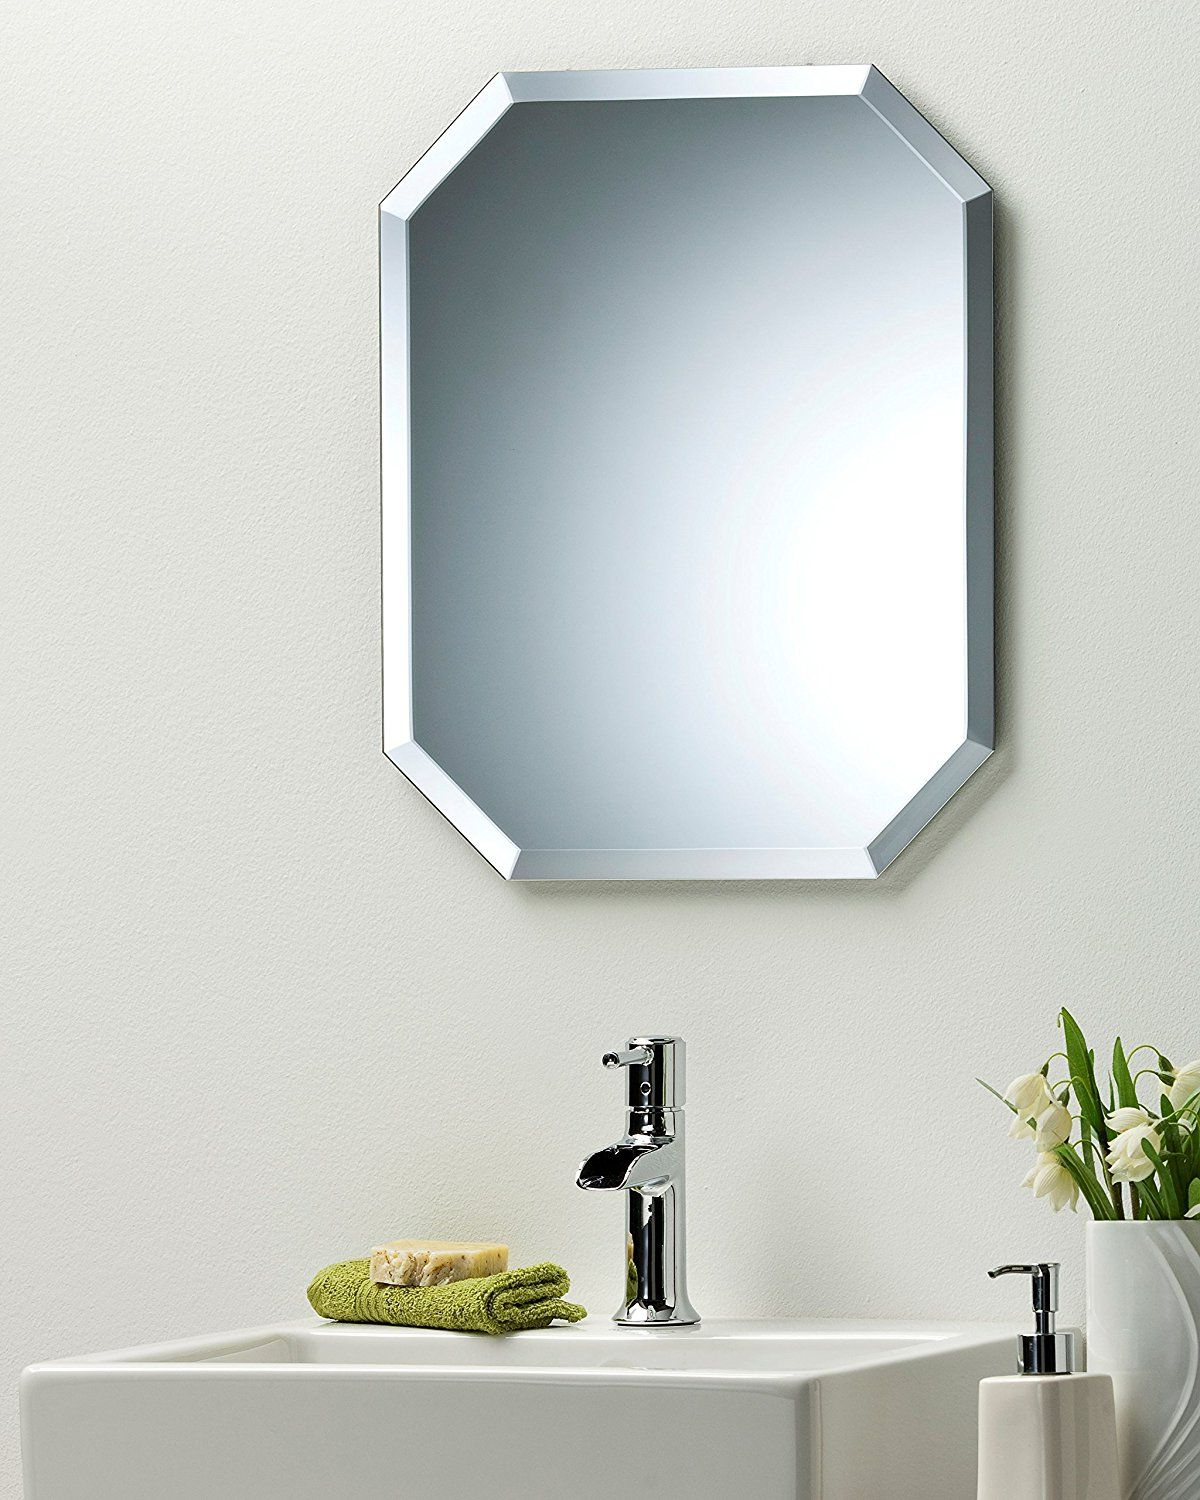 Plain Wall Mirrors In 2019 Octagon Bathroom Wall Mirror Modern Stylish With Bevel Plain (View 18 of 20)